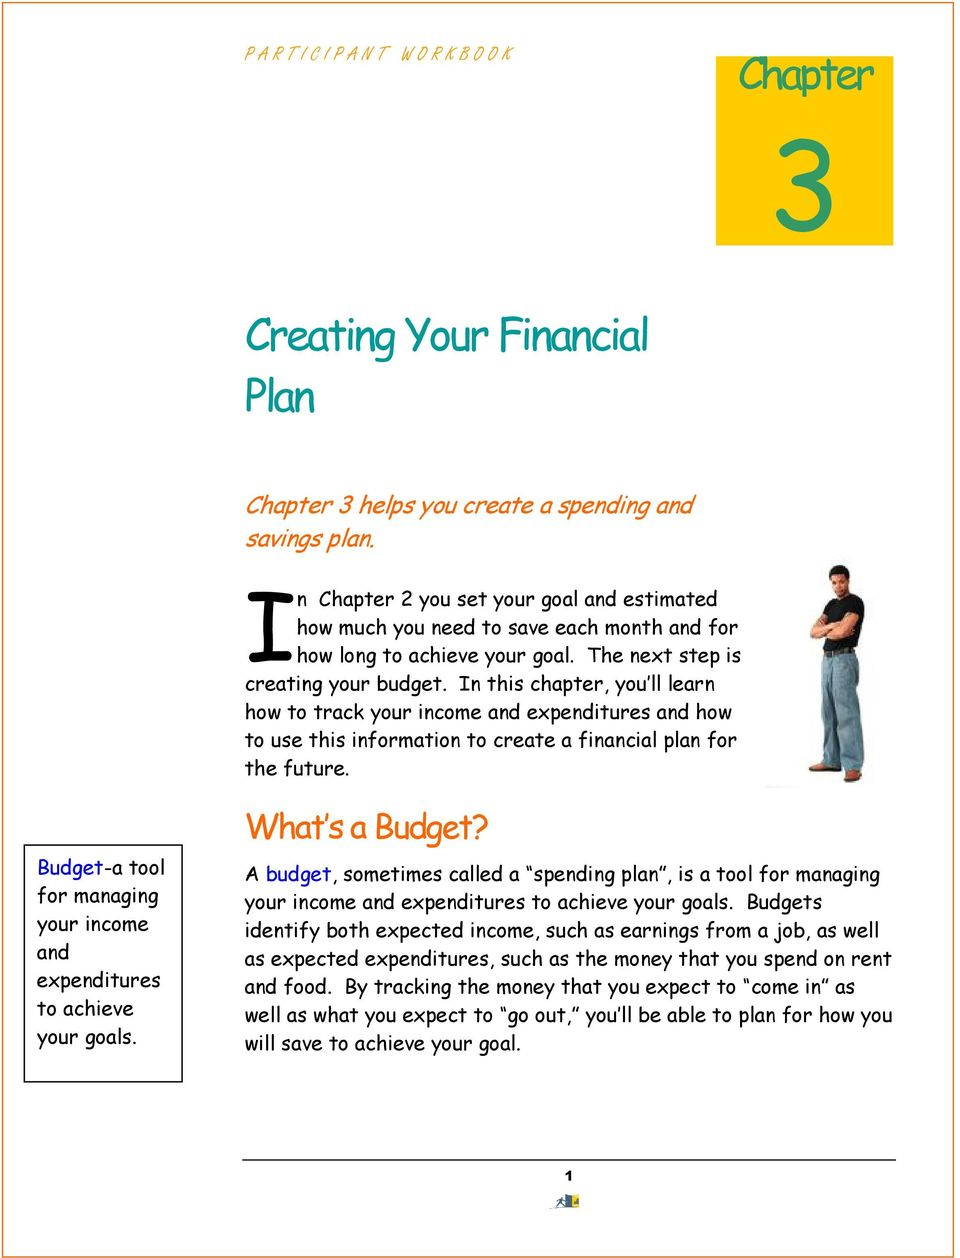 In this chapter, you ll learn how to track your income and expenditures and how to use this information to create a financial plan for the future.